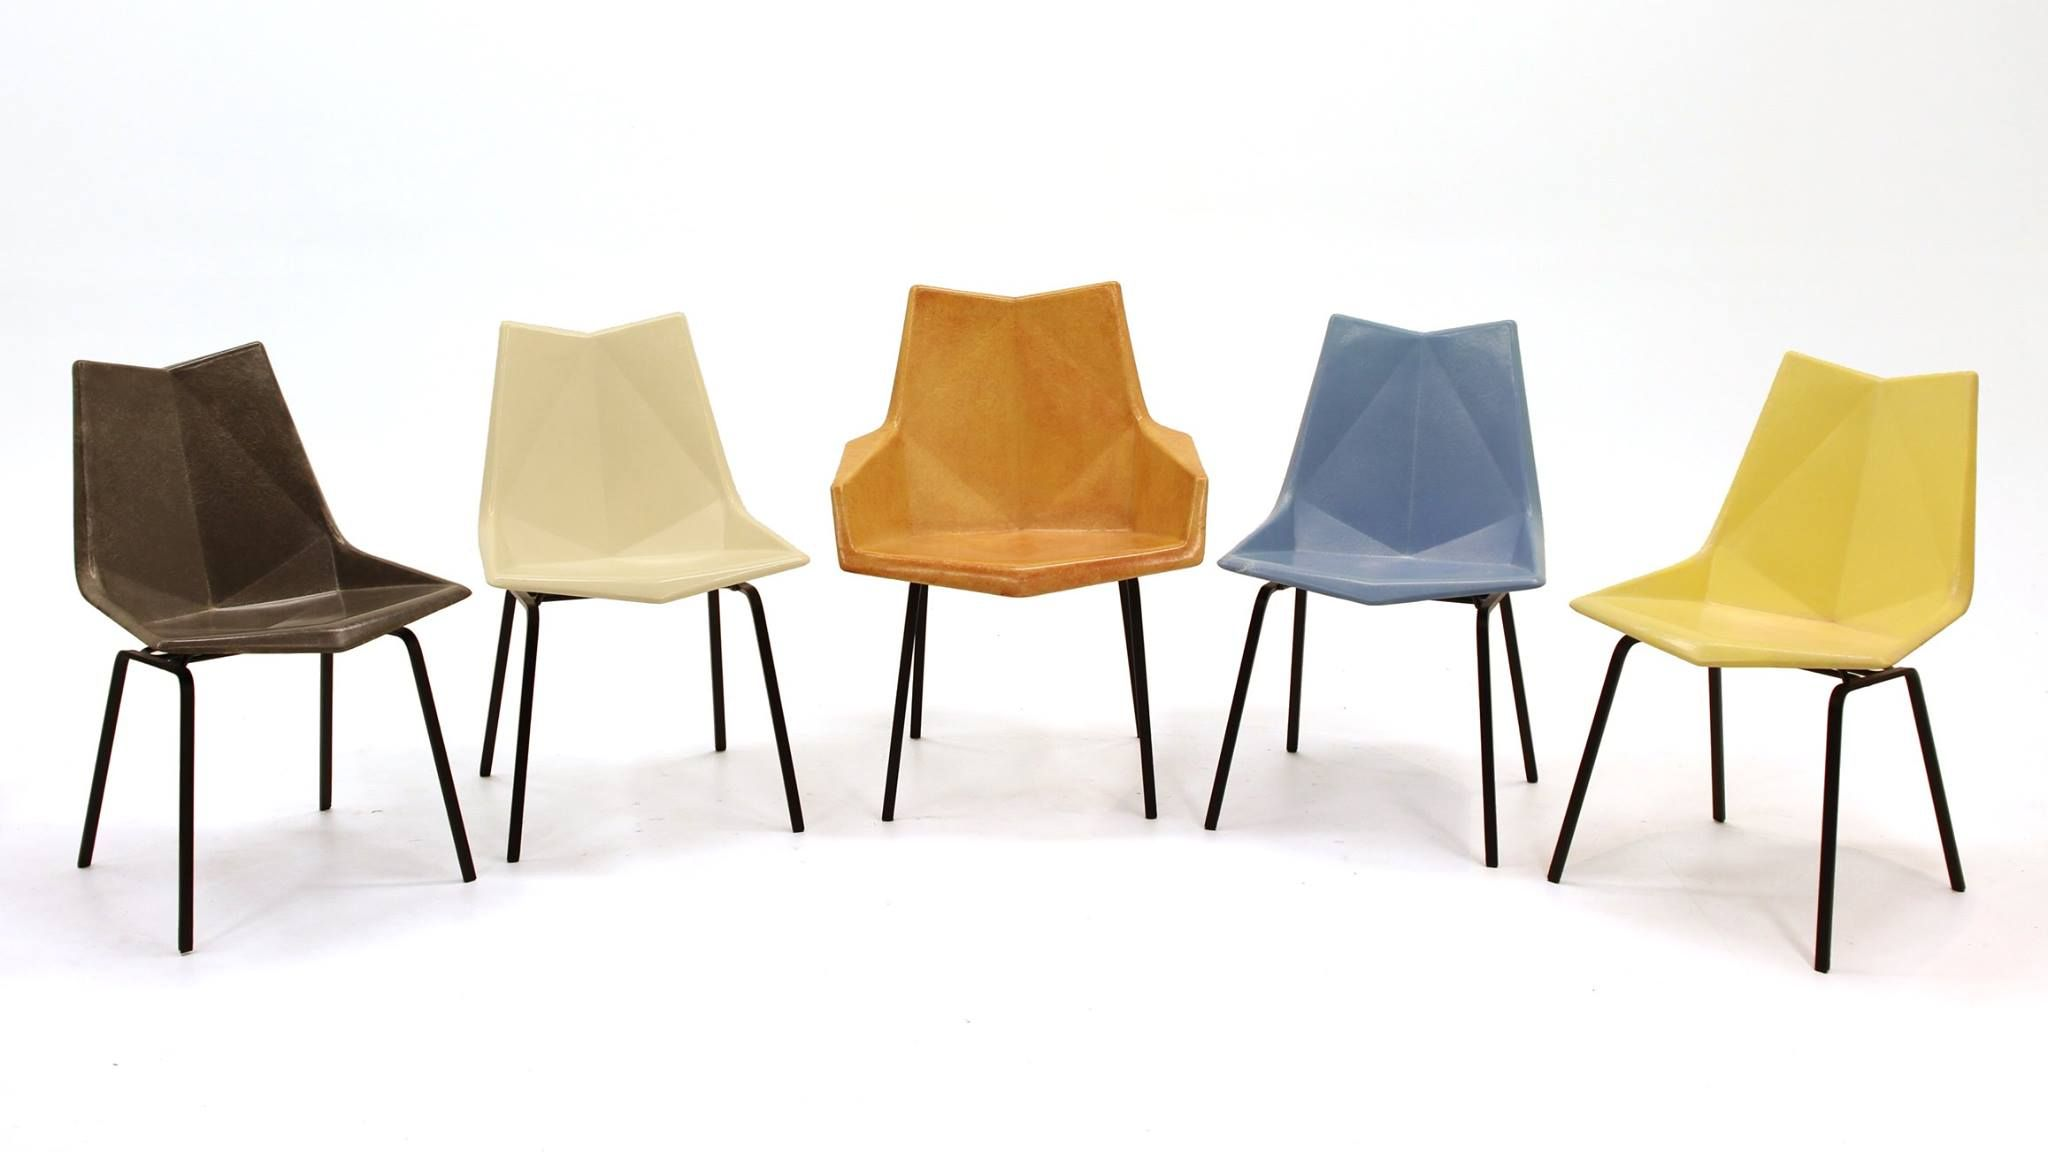 Paul Mccobb Origami Chairs All The Original Colors Origami Chair Furniture Chair